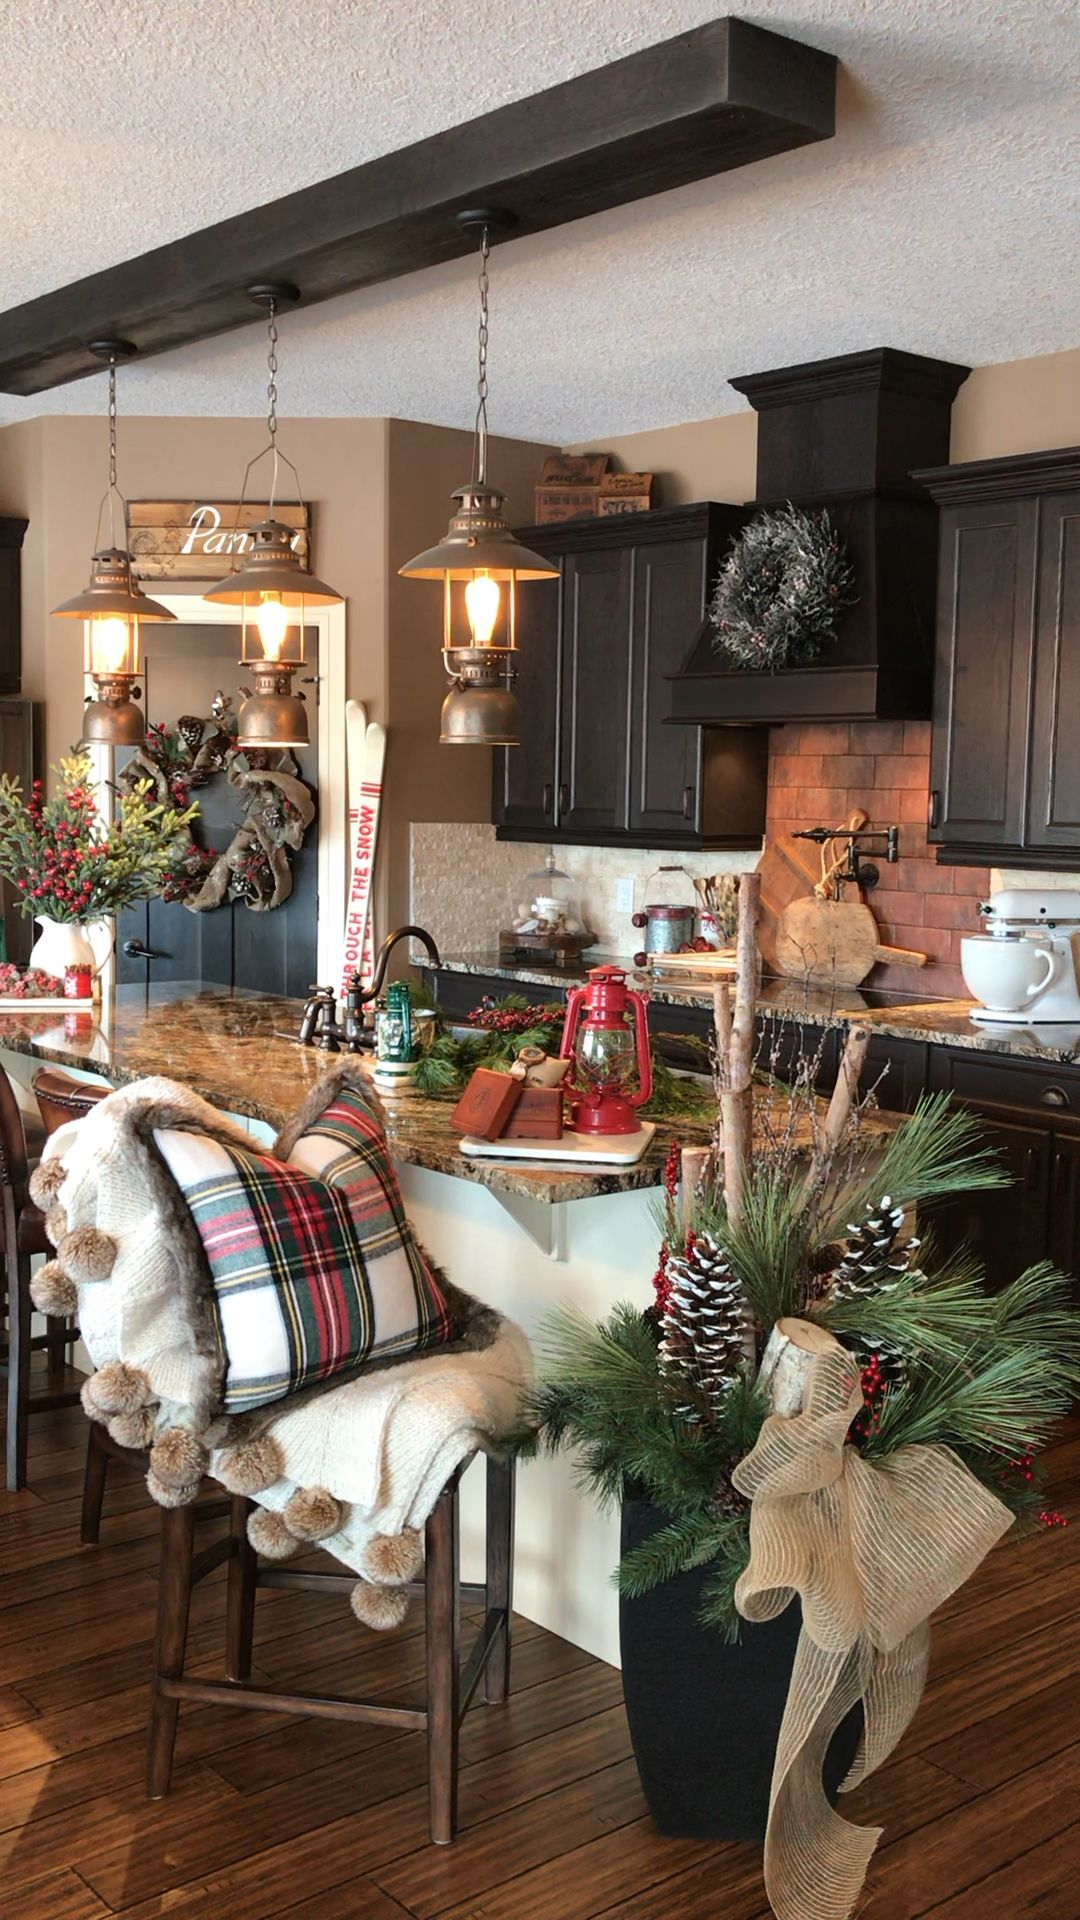 #farmhouse #rustic #rustichomedecor #kitchen #christmas #christmasdecor #house #lanterns #cozy #cozychristmas #holiday #holidaydecor #decor  #homedecor